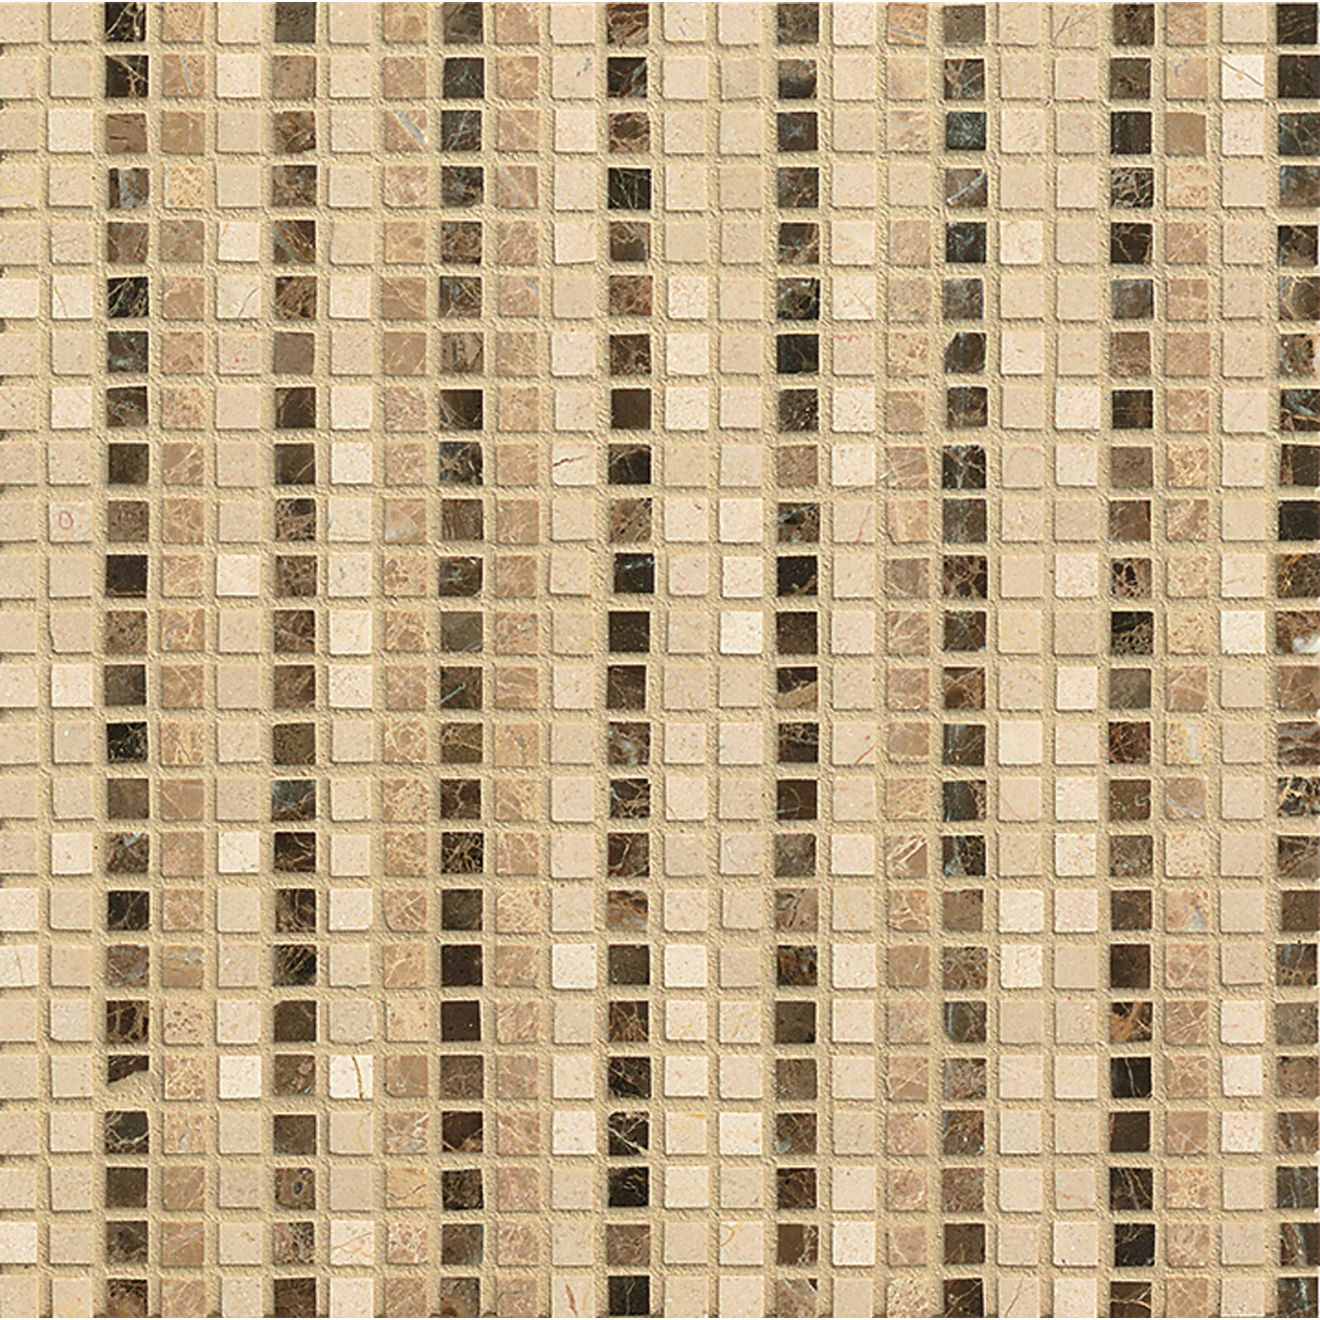 "Menage et Trois 3/8"" x 3/8"" Floor & Wall Mosaic in Espresso, Heirloom, Viburnum"